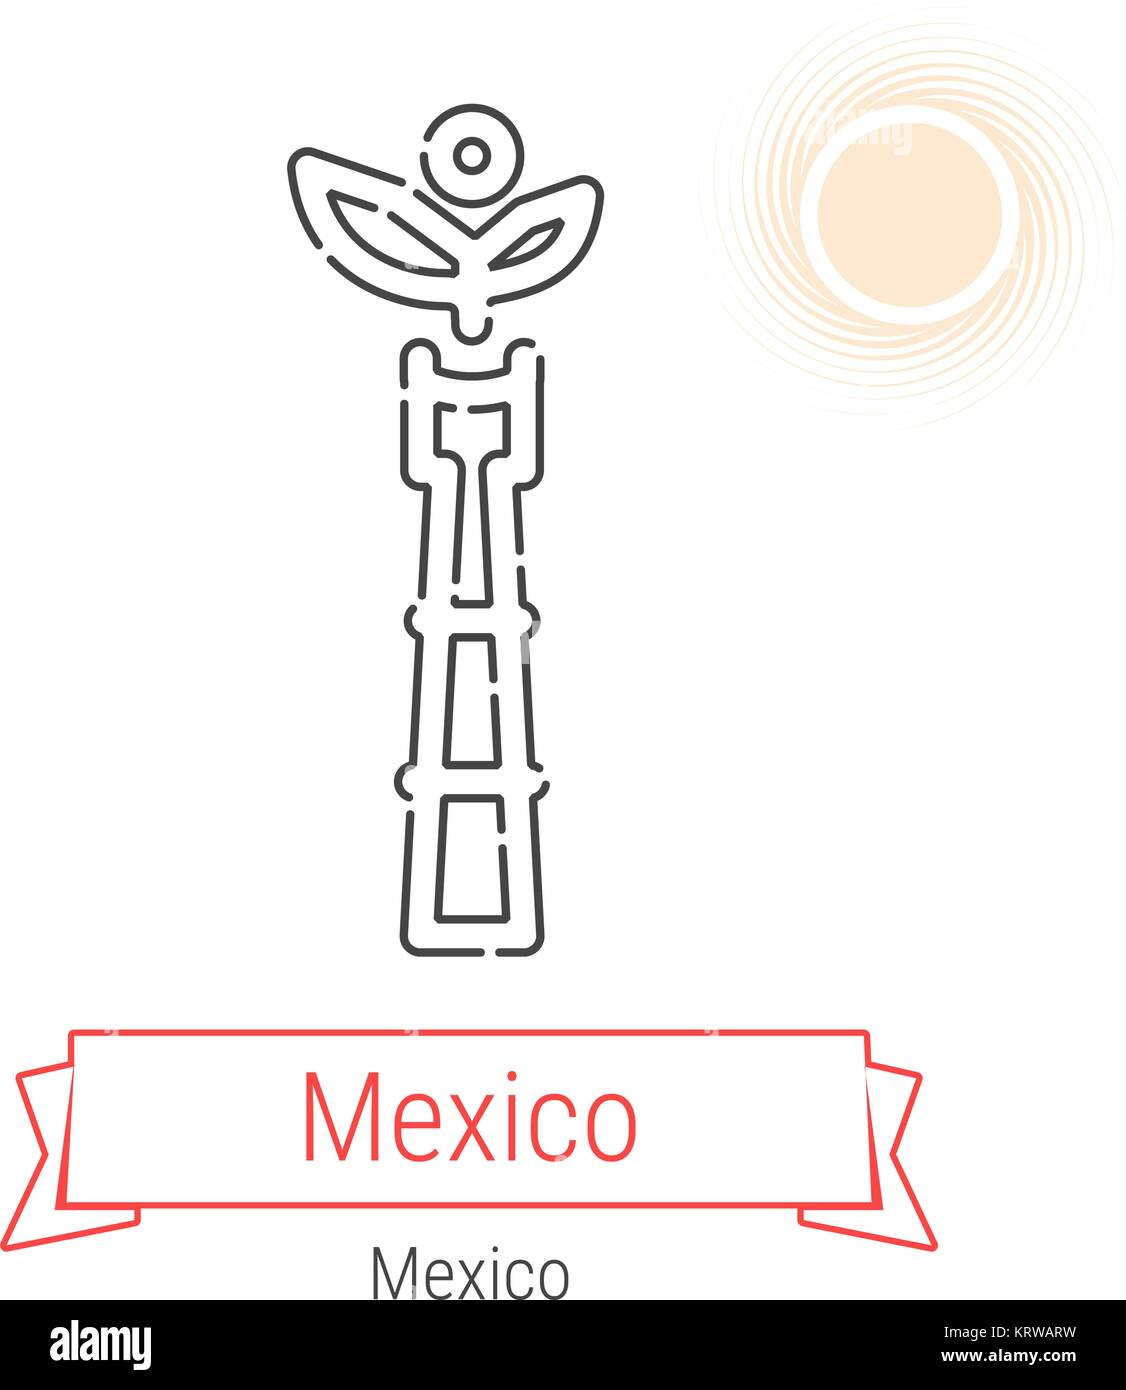 Mexico City Mexico Vector Line Icon With Red Ribbon Isolated On